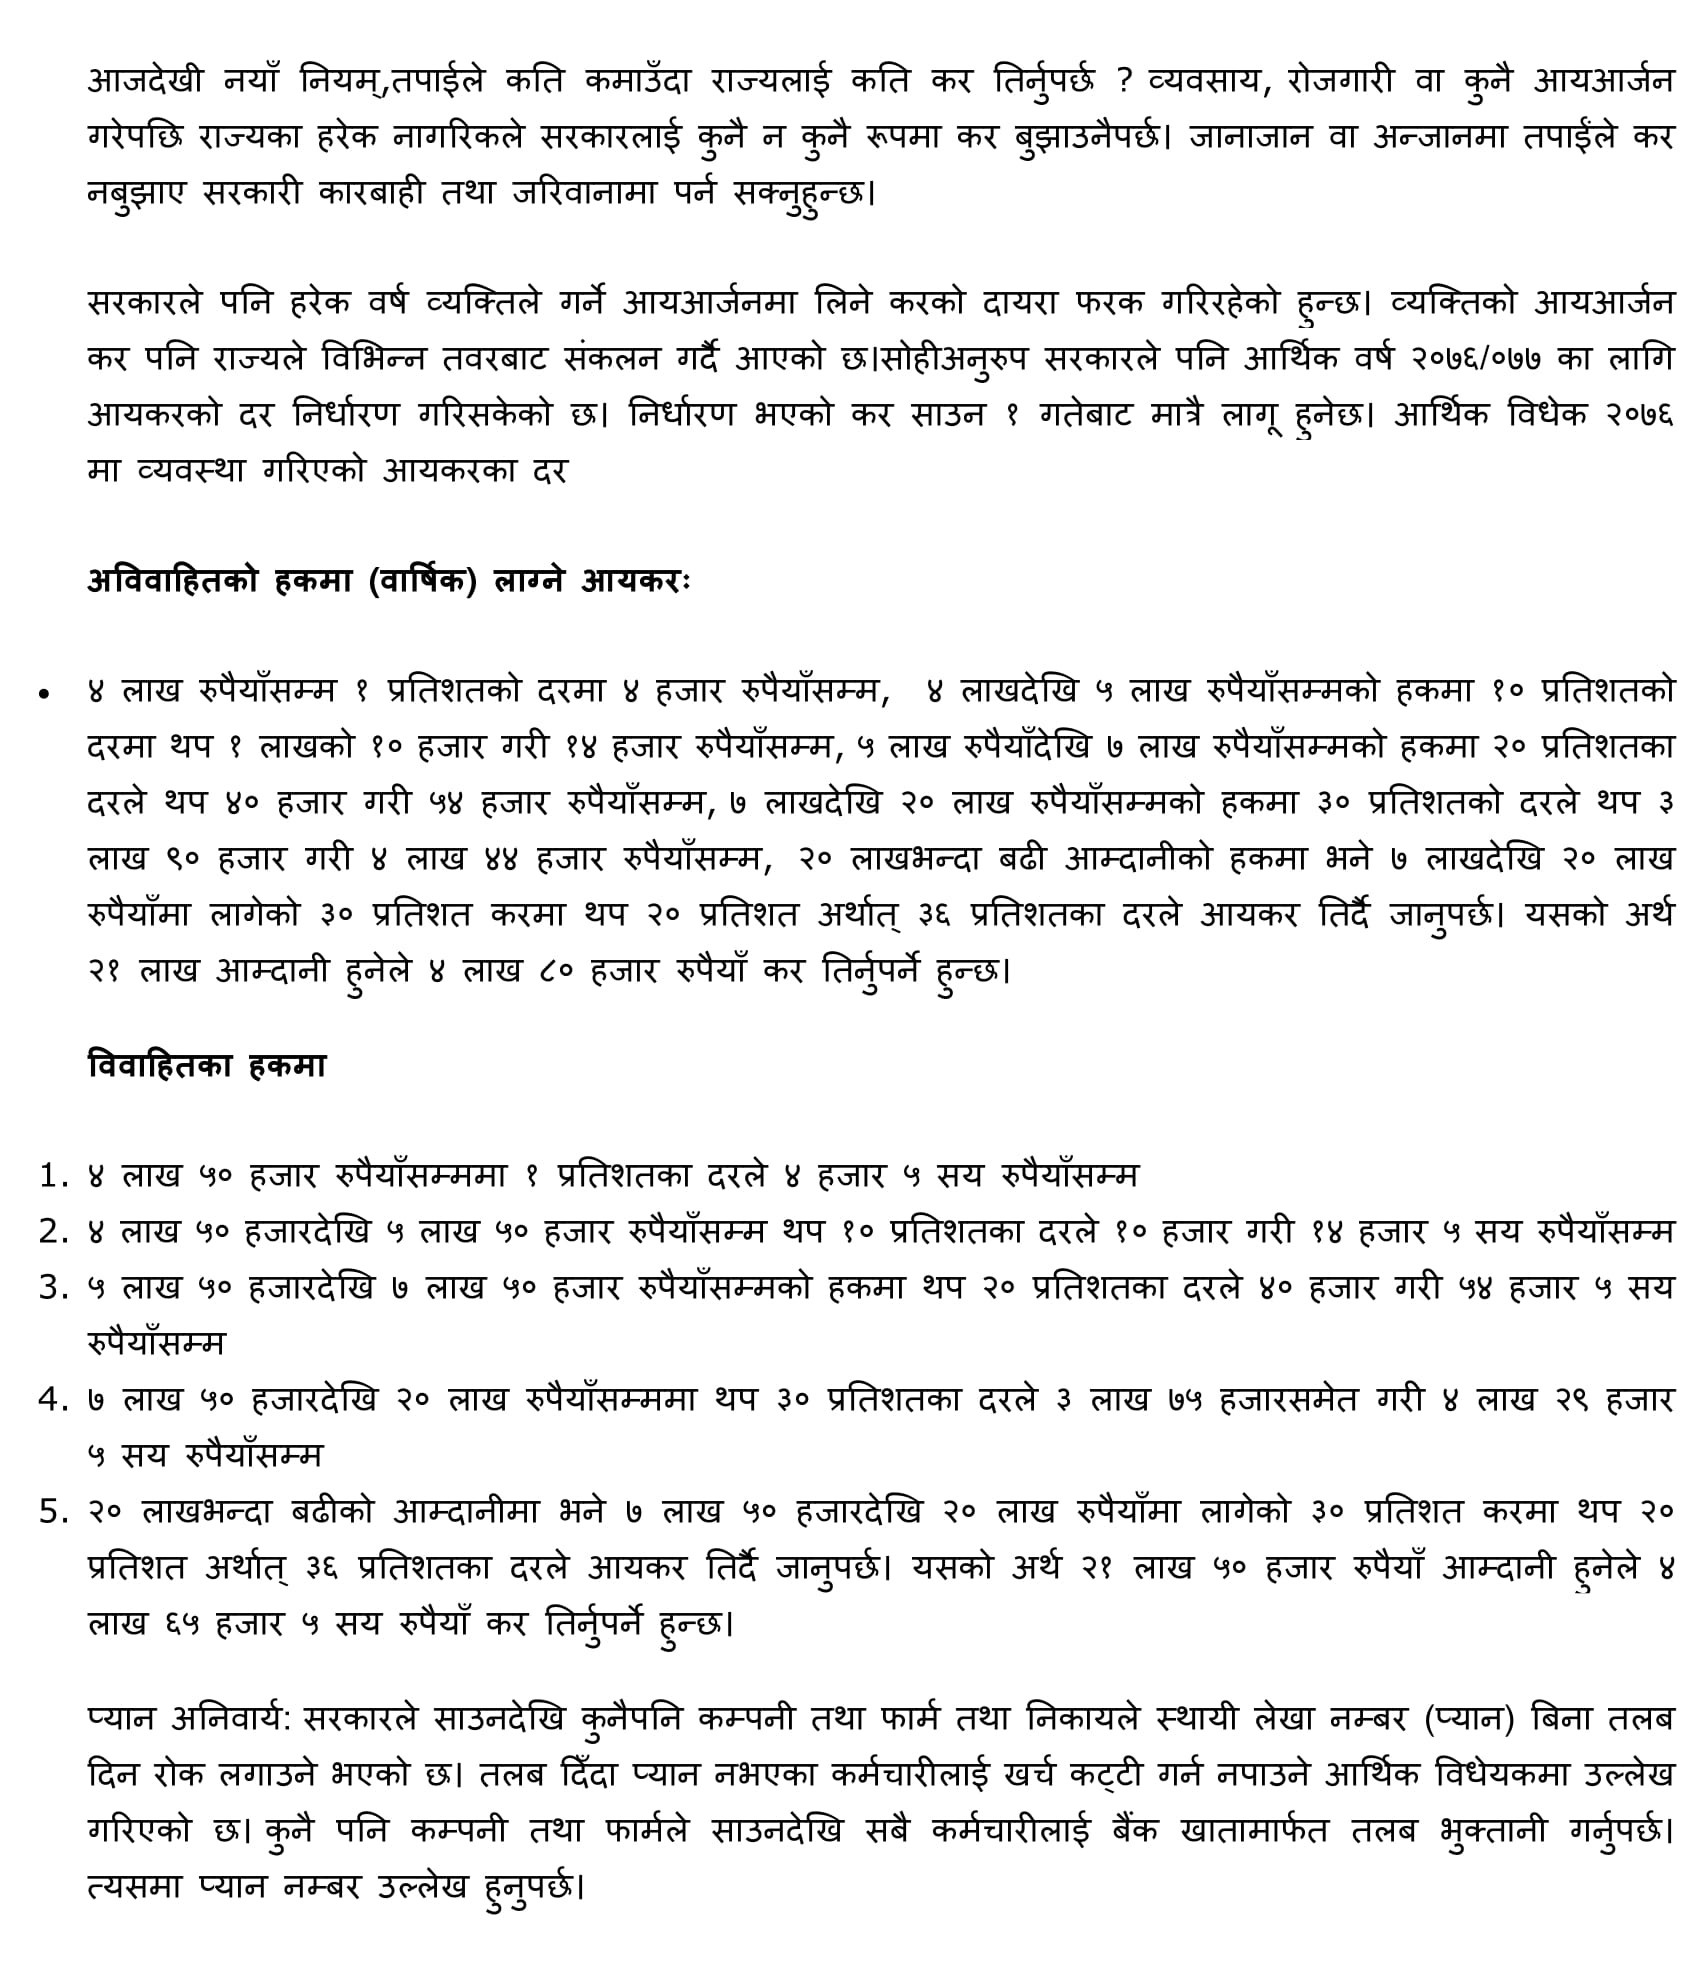 Nowadays the new rule, how much tax should you pay the state for how much you earn? Every citizen of the state must submit taxes to the government in some way after doing business, employment or any income. Deliberately or unintentionally, you may incur government proceedings and penalties without paying taxes.